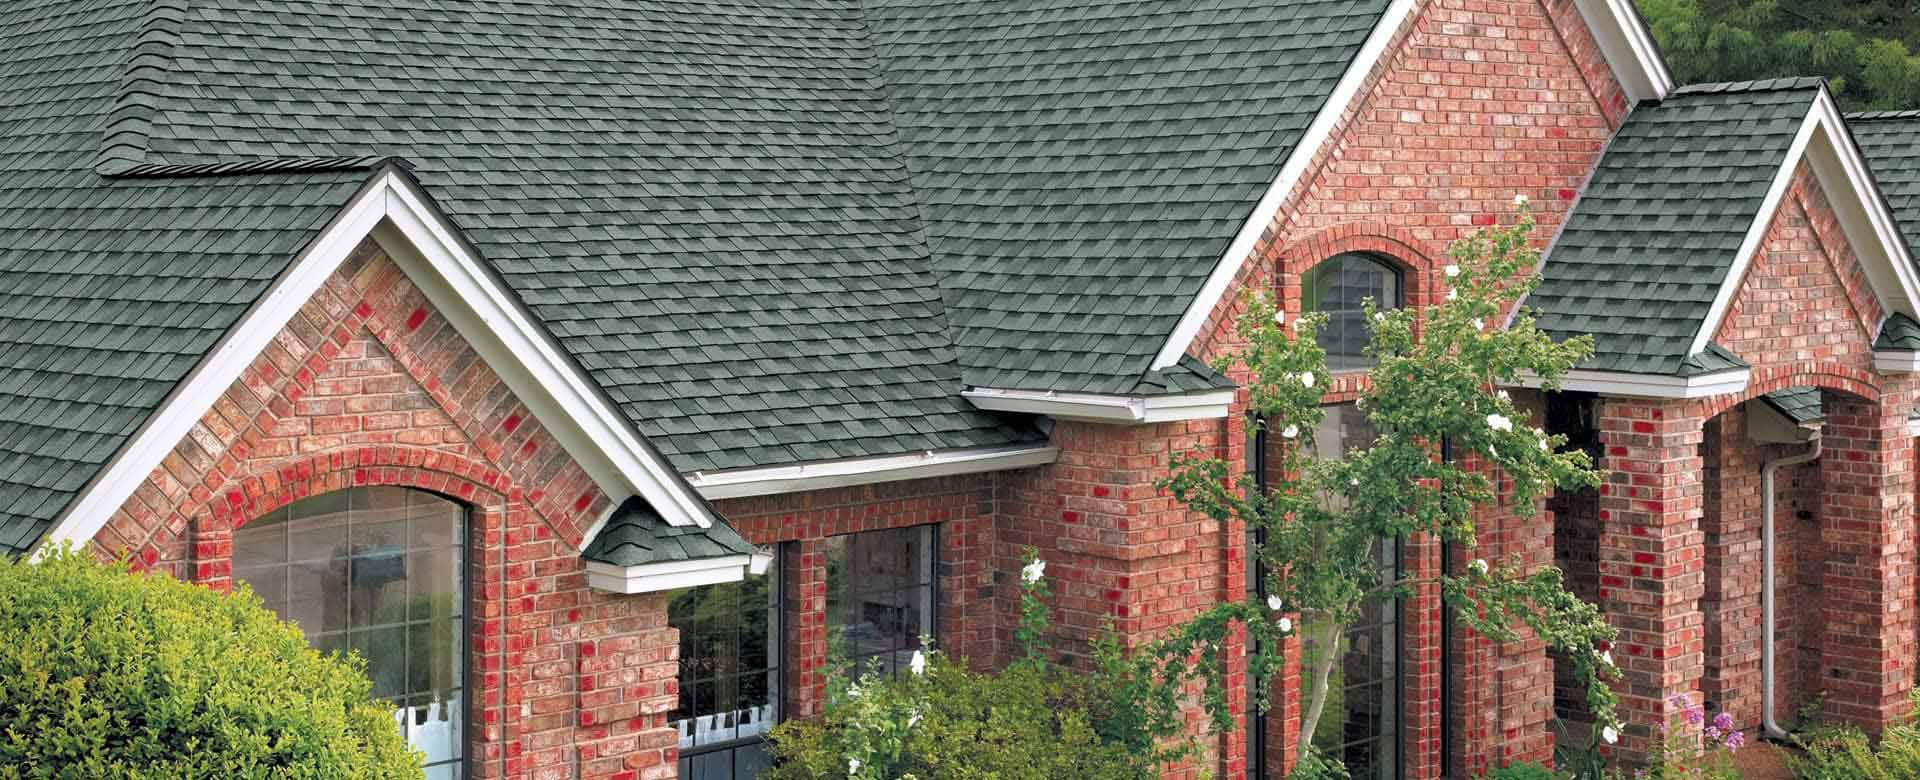 Roof Repair Home Remodeling In Allen Tx Dallas Frisco